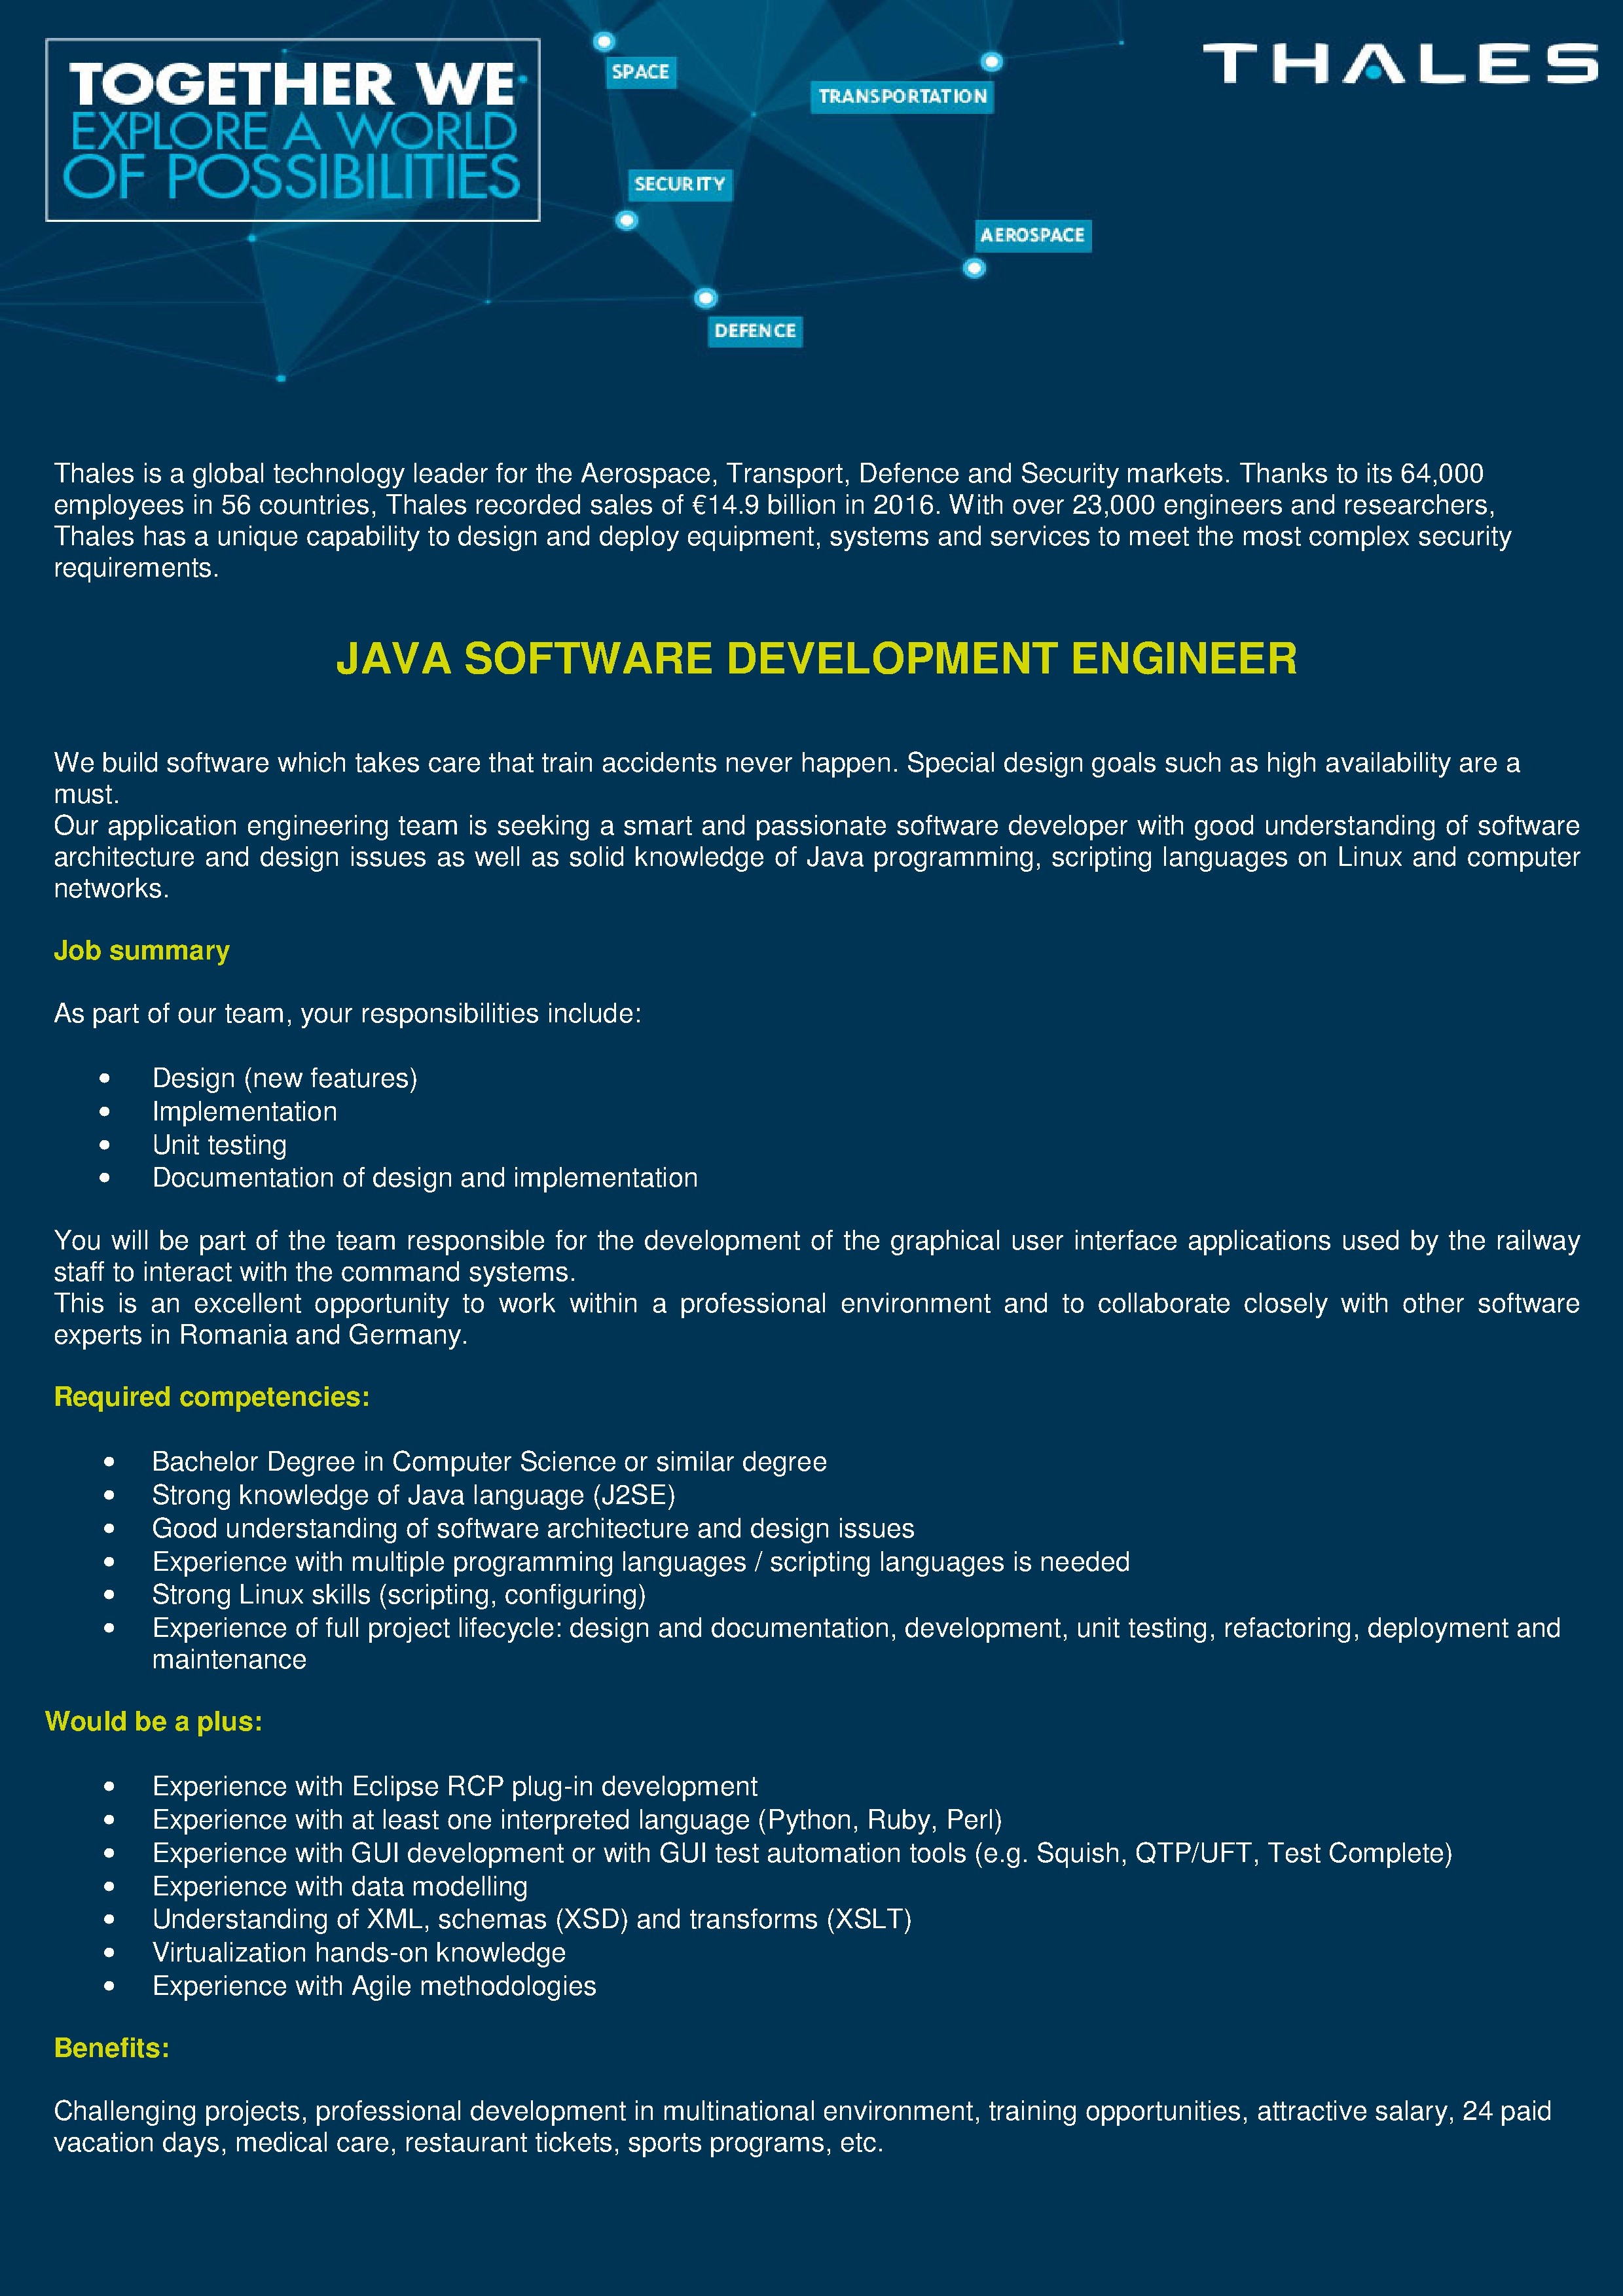 Java Software Development Engineer